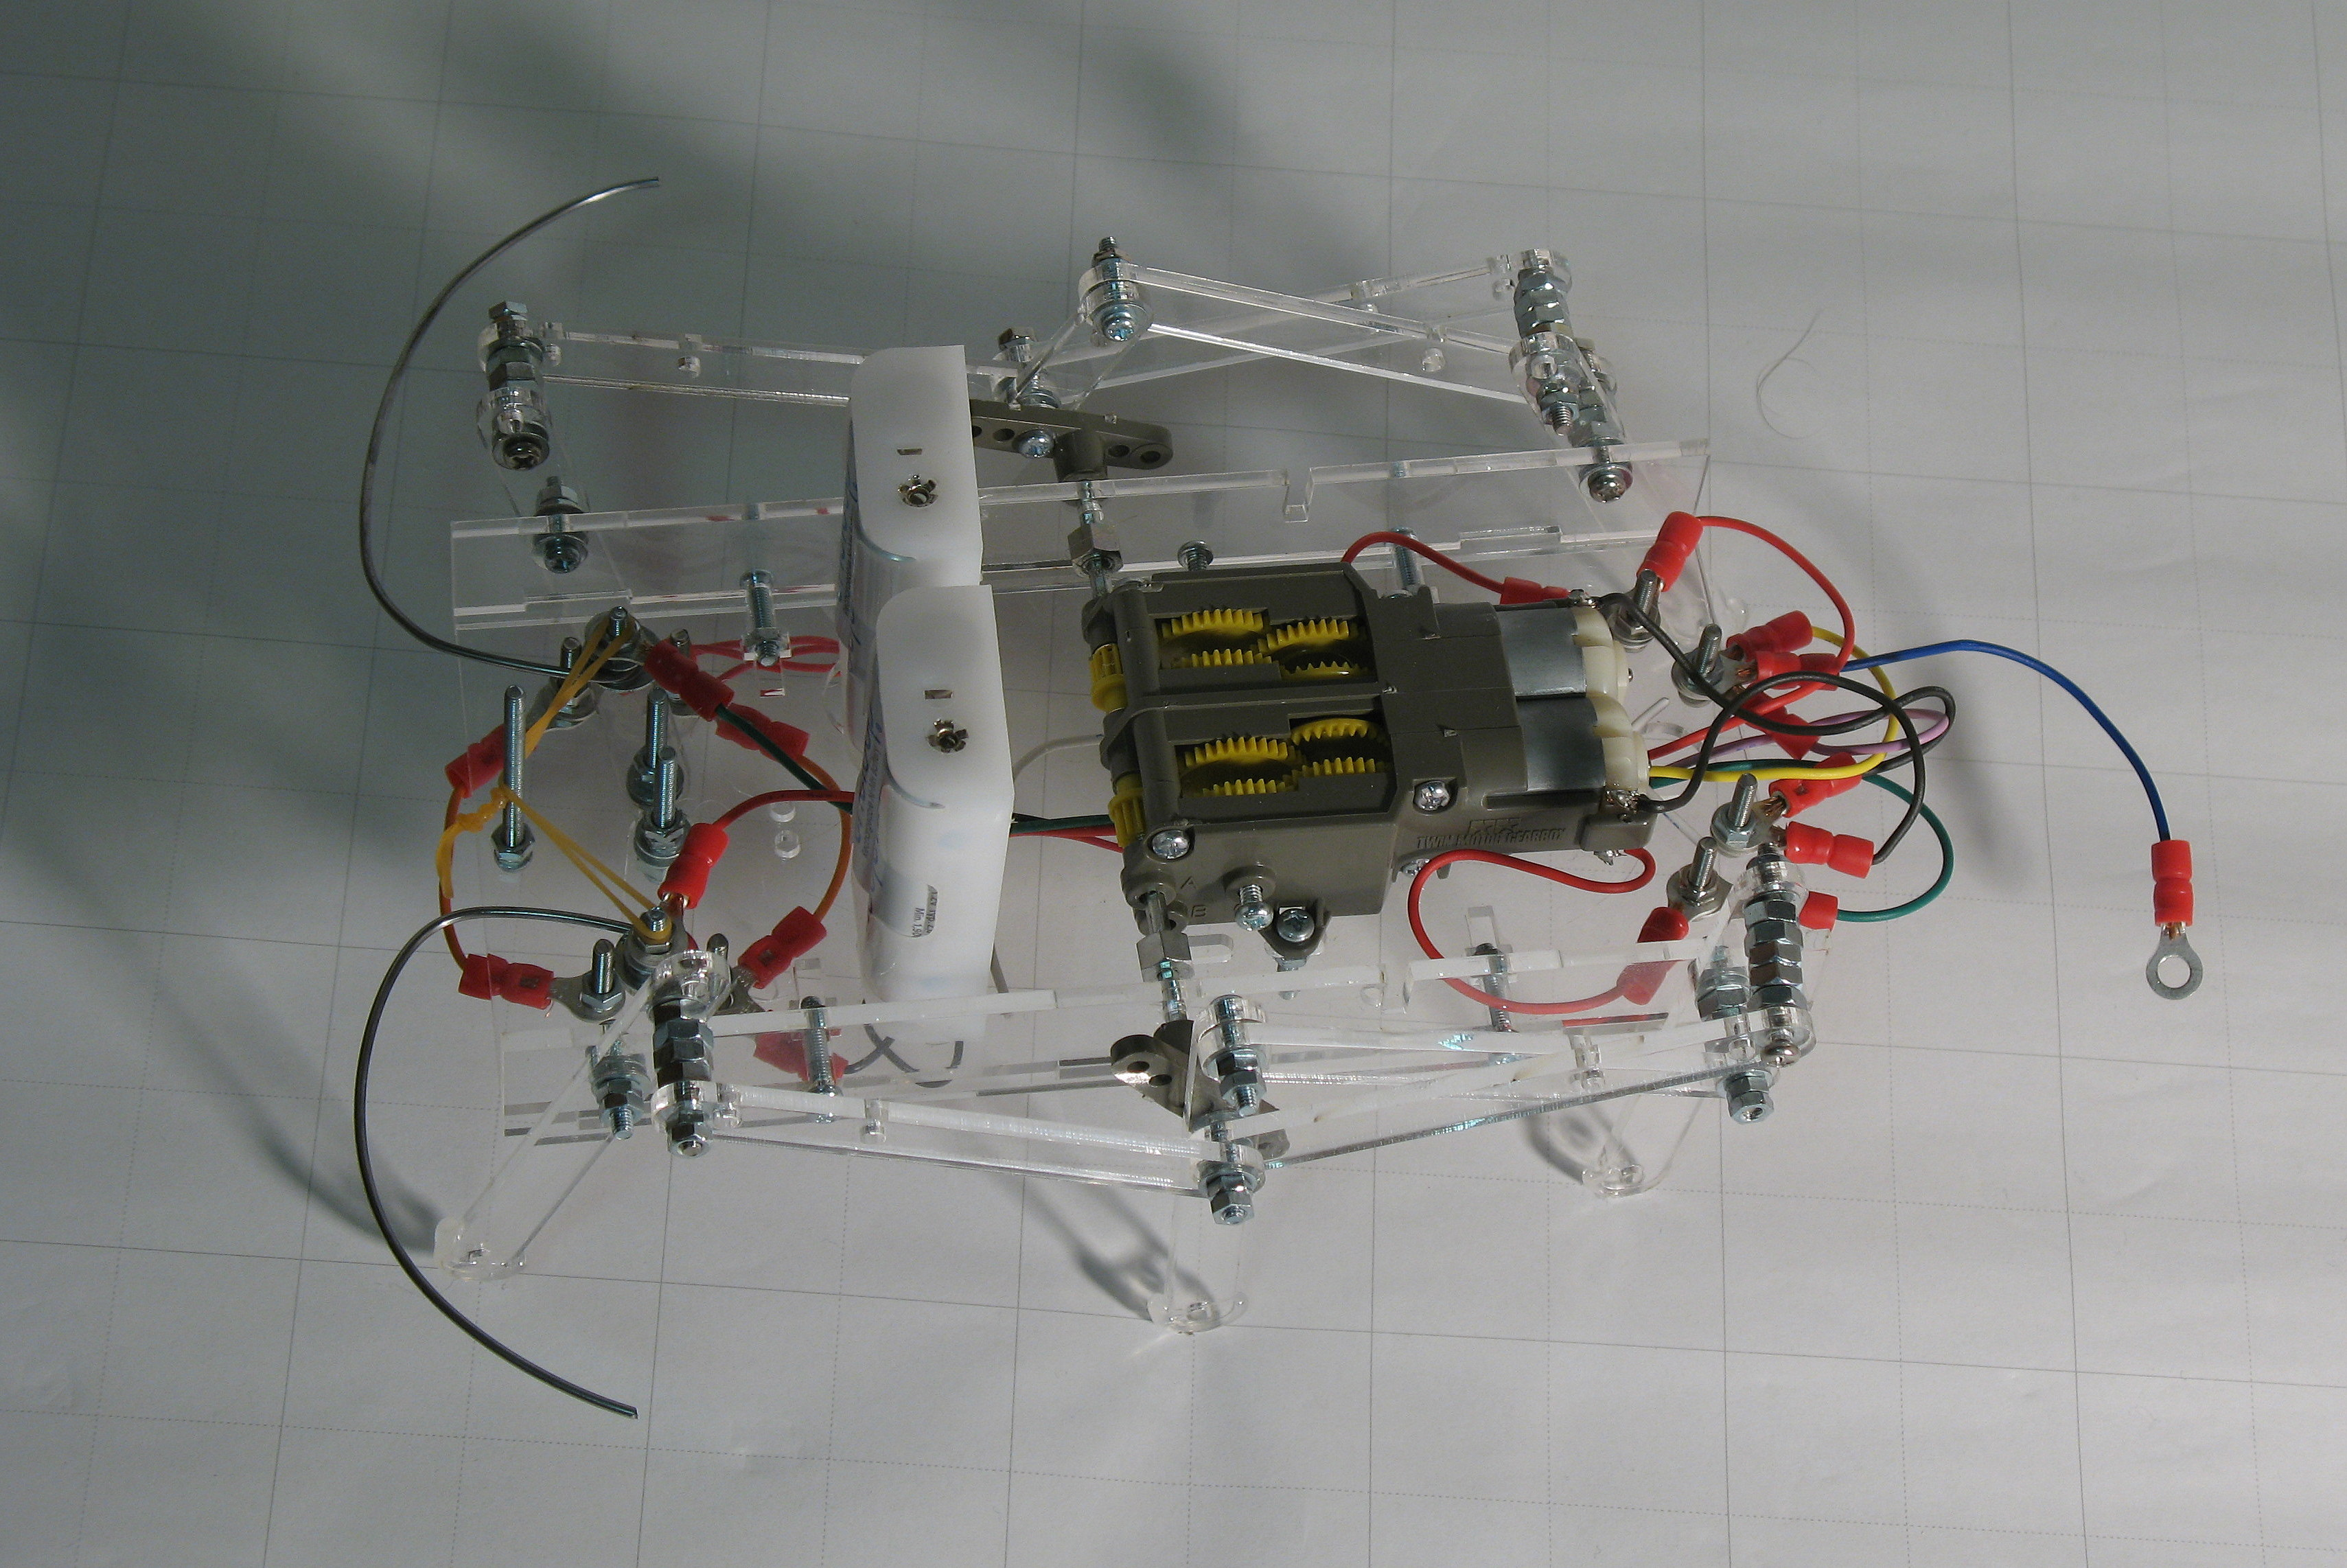 Picture of How to Make an OAWR (Obstacle Avoiding Walking Robot)